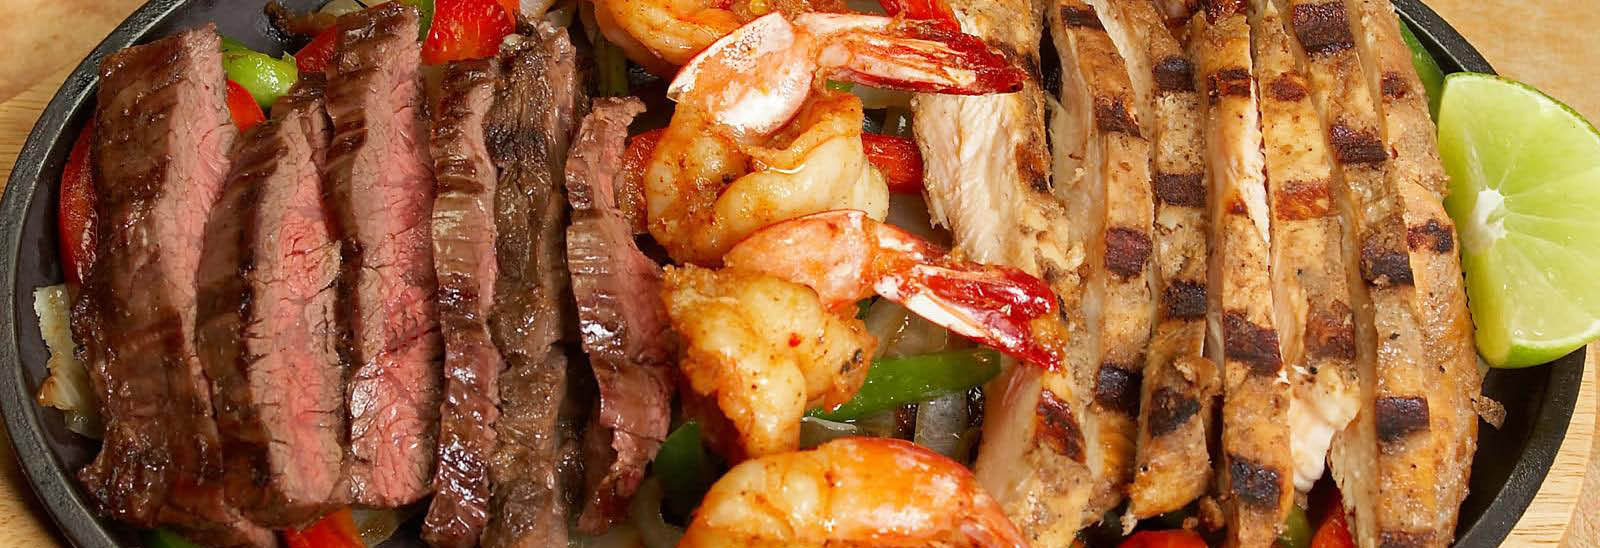 Mexican Combo Platter with beef, shrimp and chicken banner